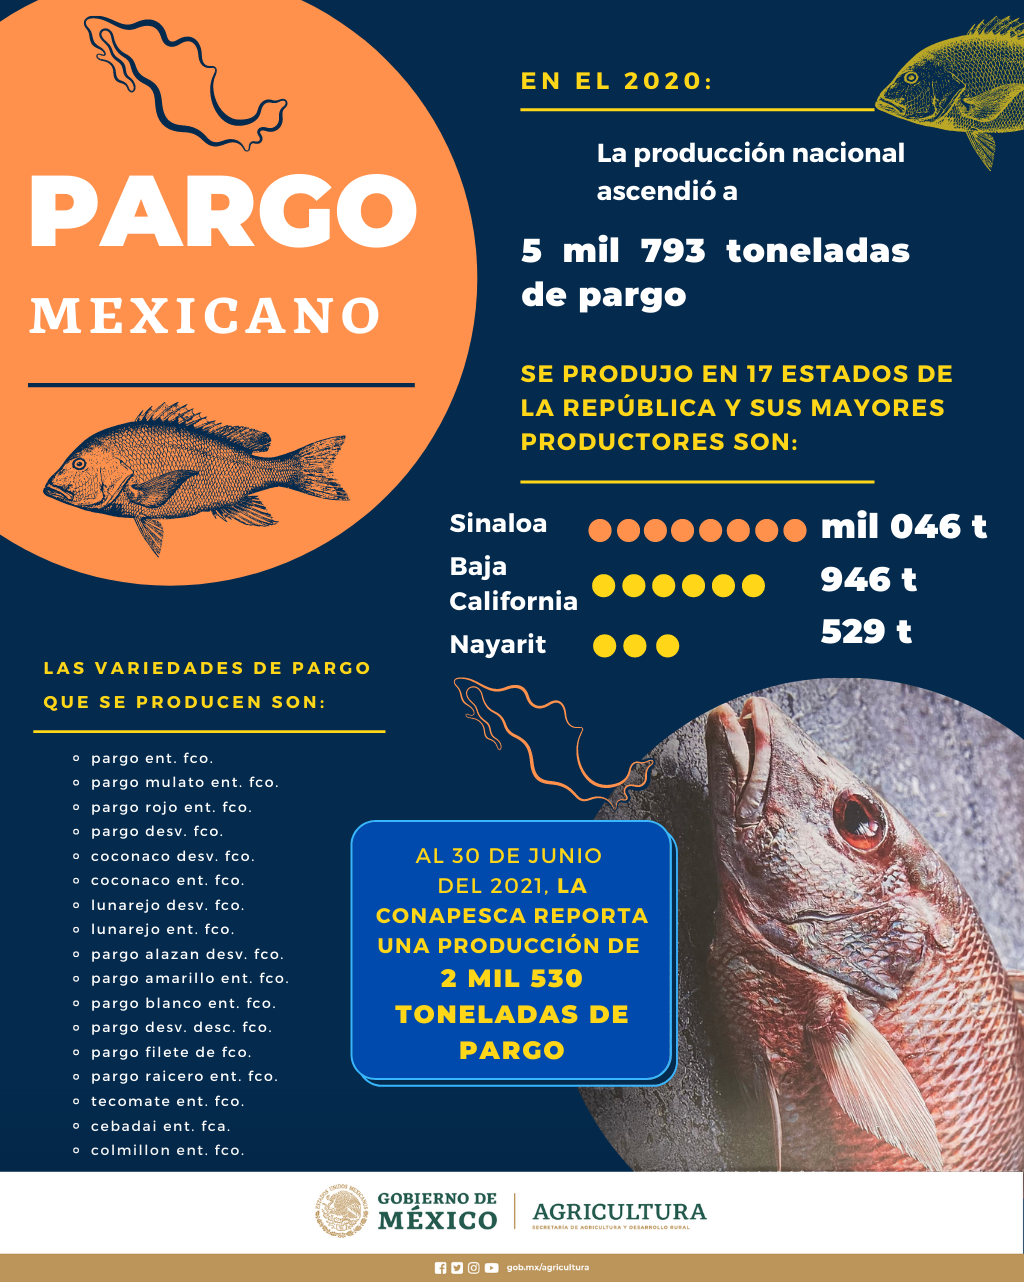 /cms/uploads/image/file/657251/INFO_PARGO_MEXICANO.png